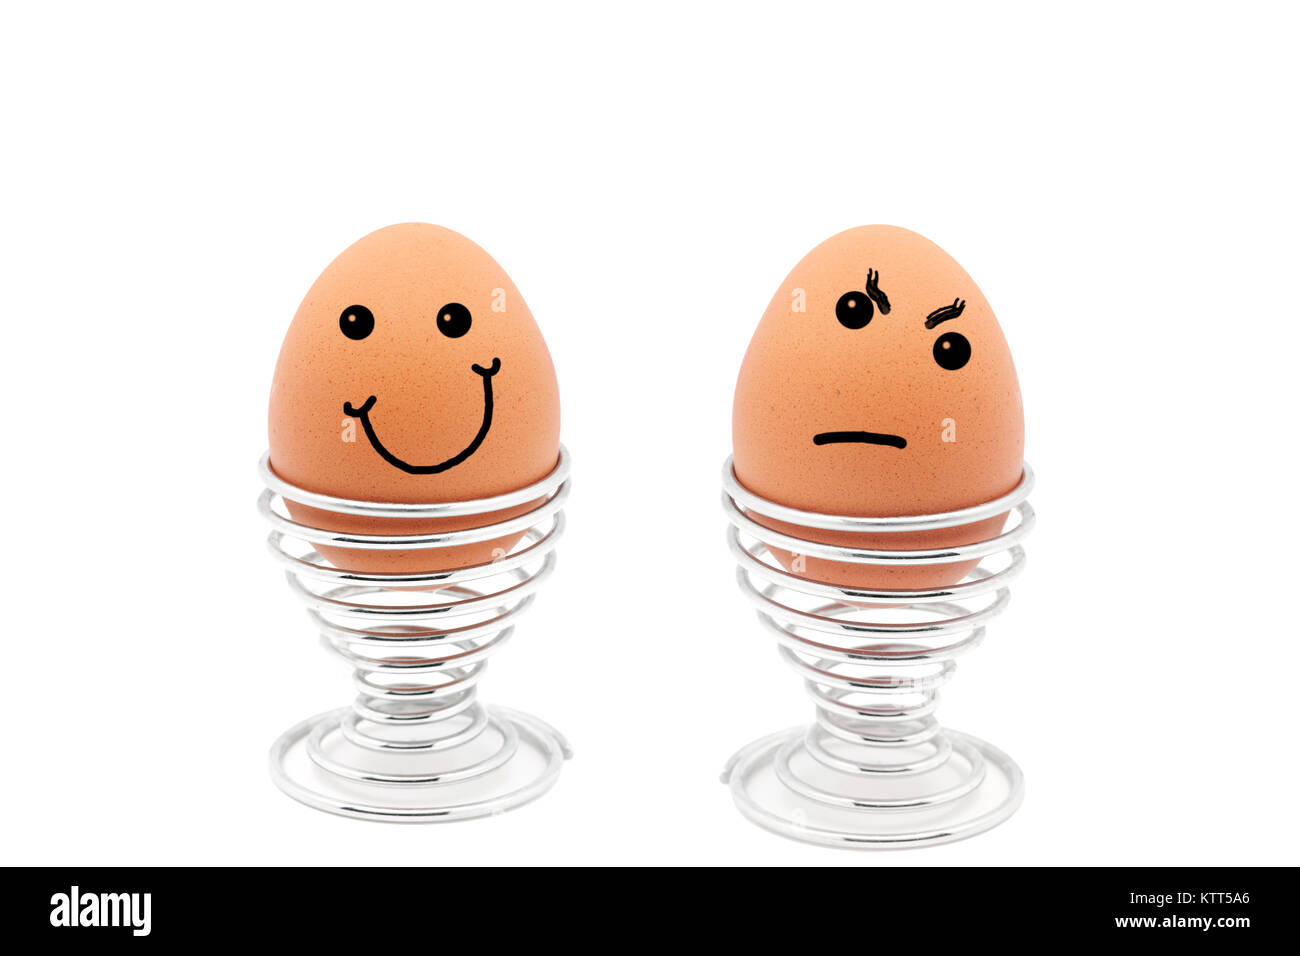 Two eggs in egg cups with happy and sad faces - Stock Image